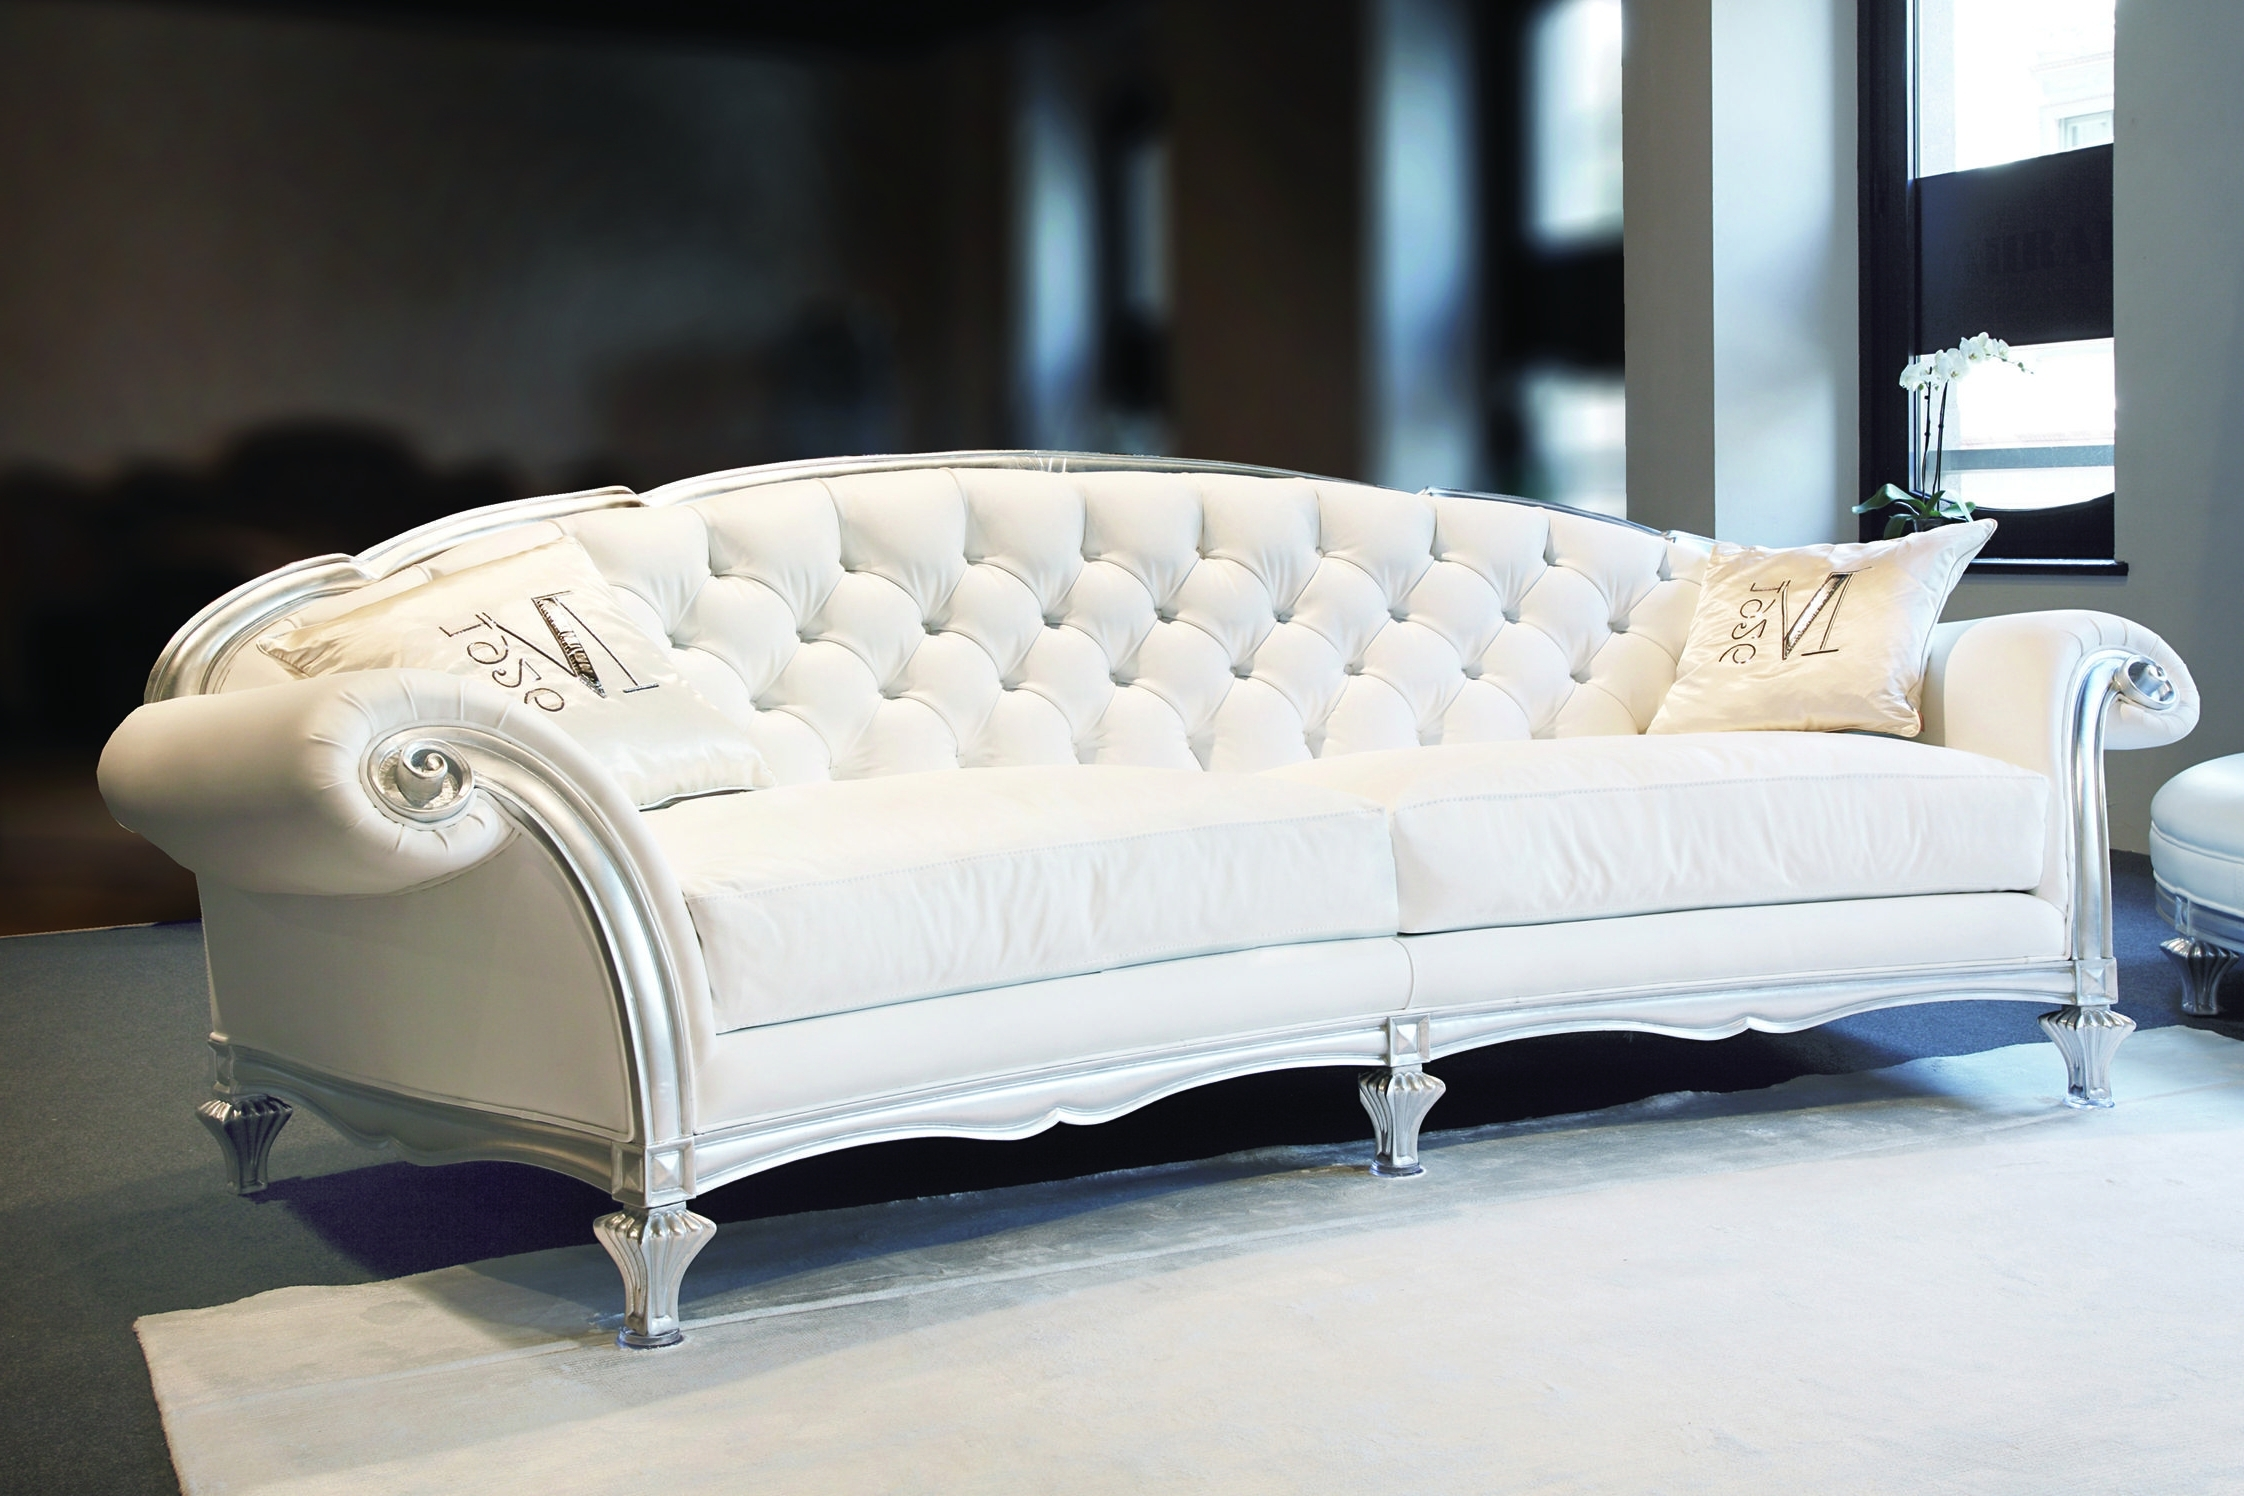 4 Seat Leather Sofas With Regard To Favorite Blossom 4 Seater Sofa Covering As Seen: Leather Art (View 5 of 20)